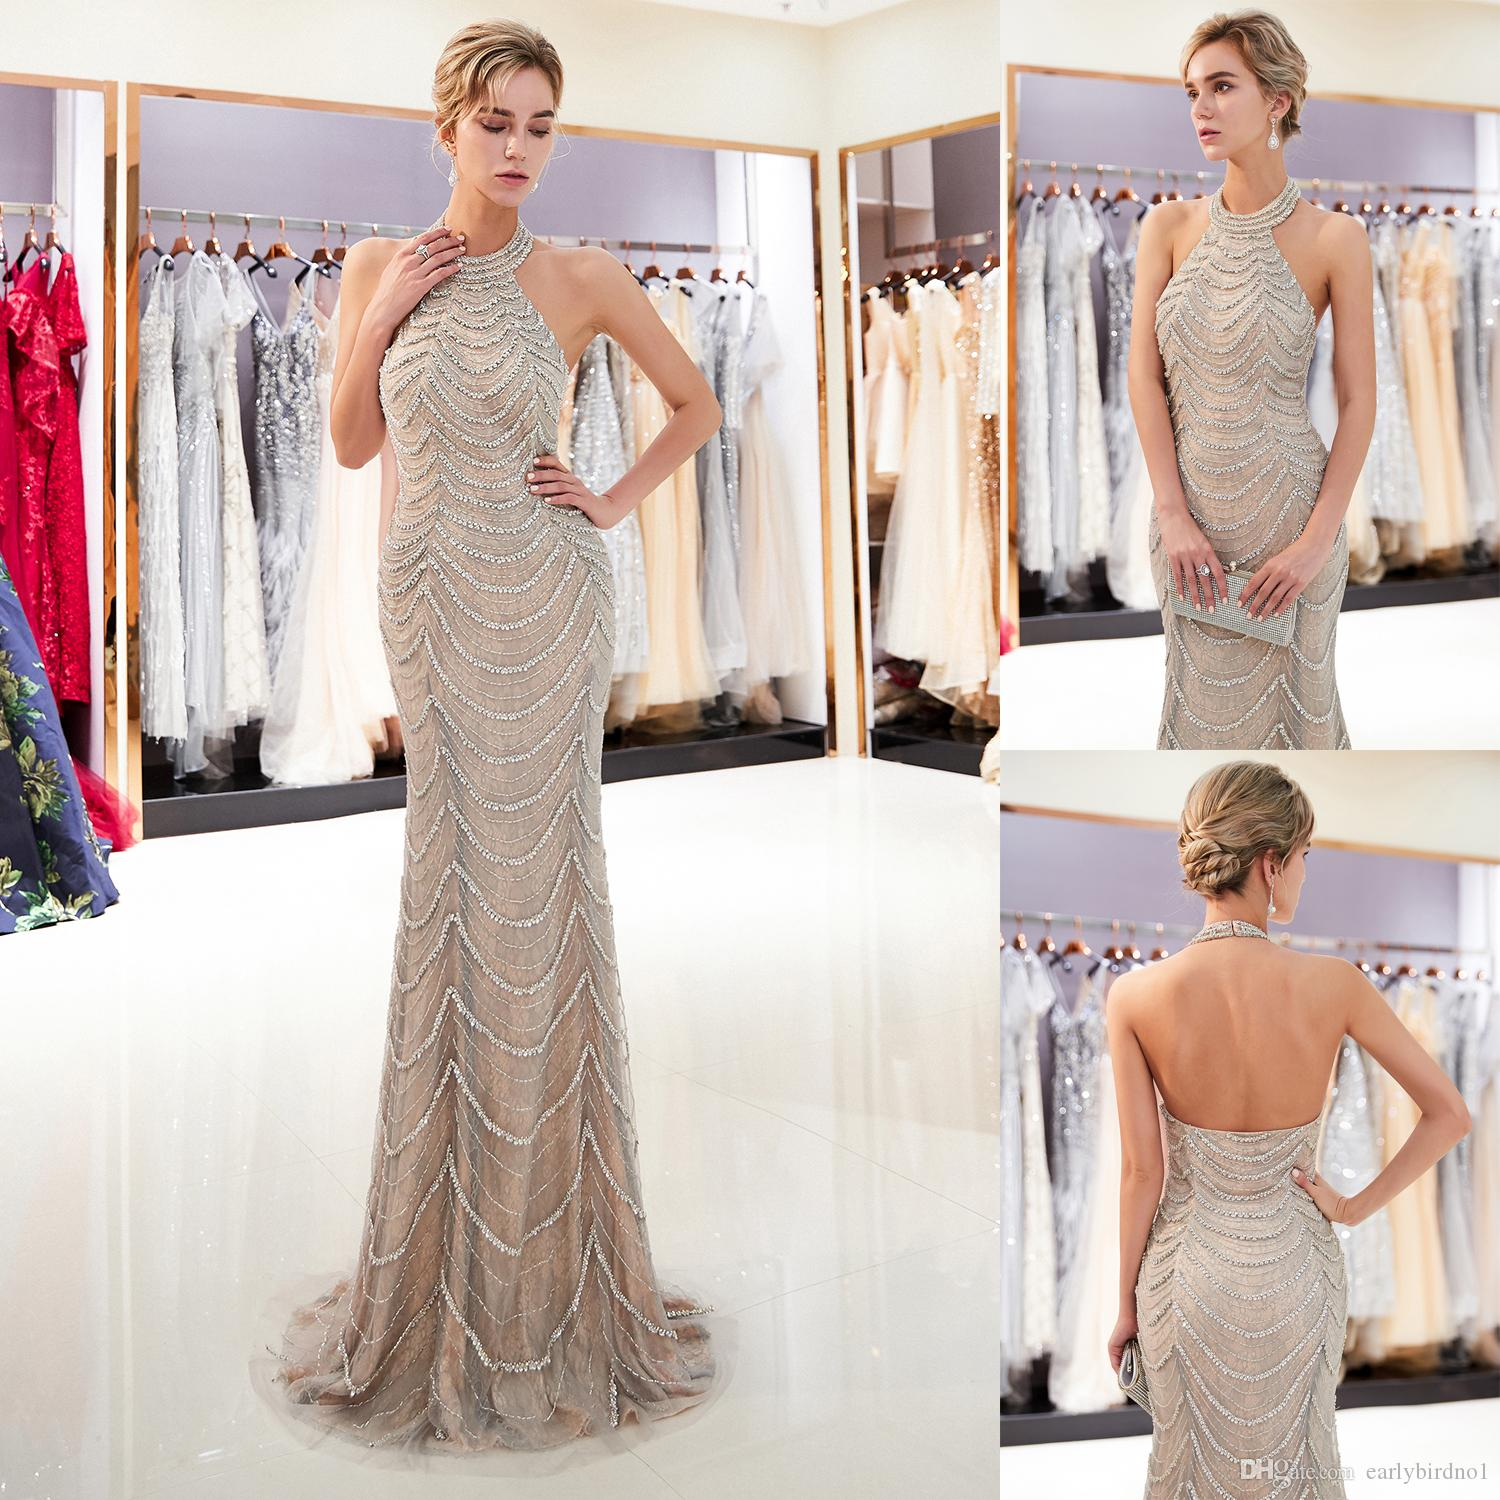 Sexy Halter Crystal Sequins Mermaid Evening Dresses Backless Designer Formal Occasion Wear Wedding Party Ball Gown 100% Real Image CPS1172